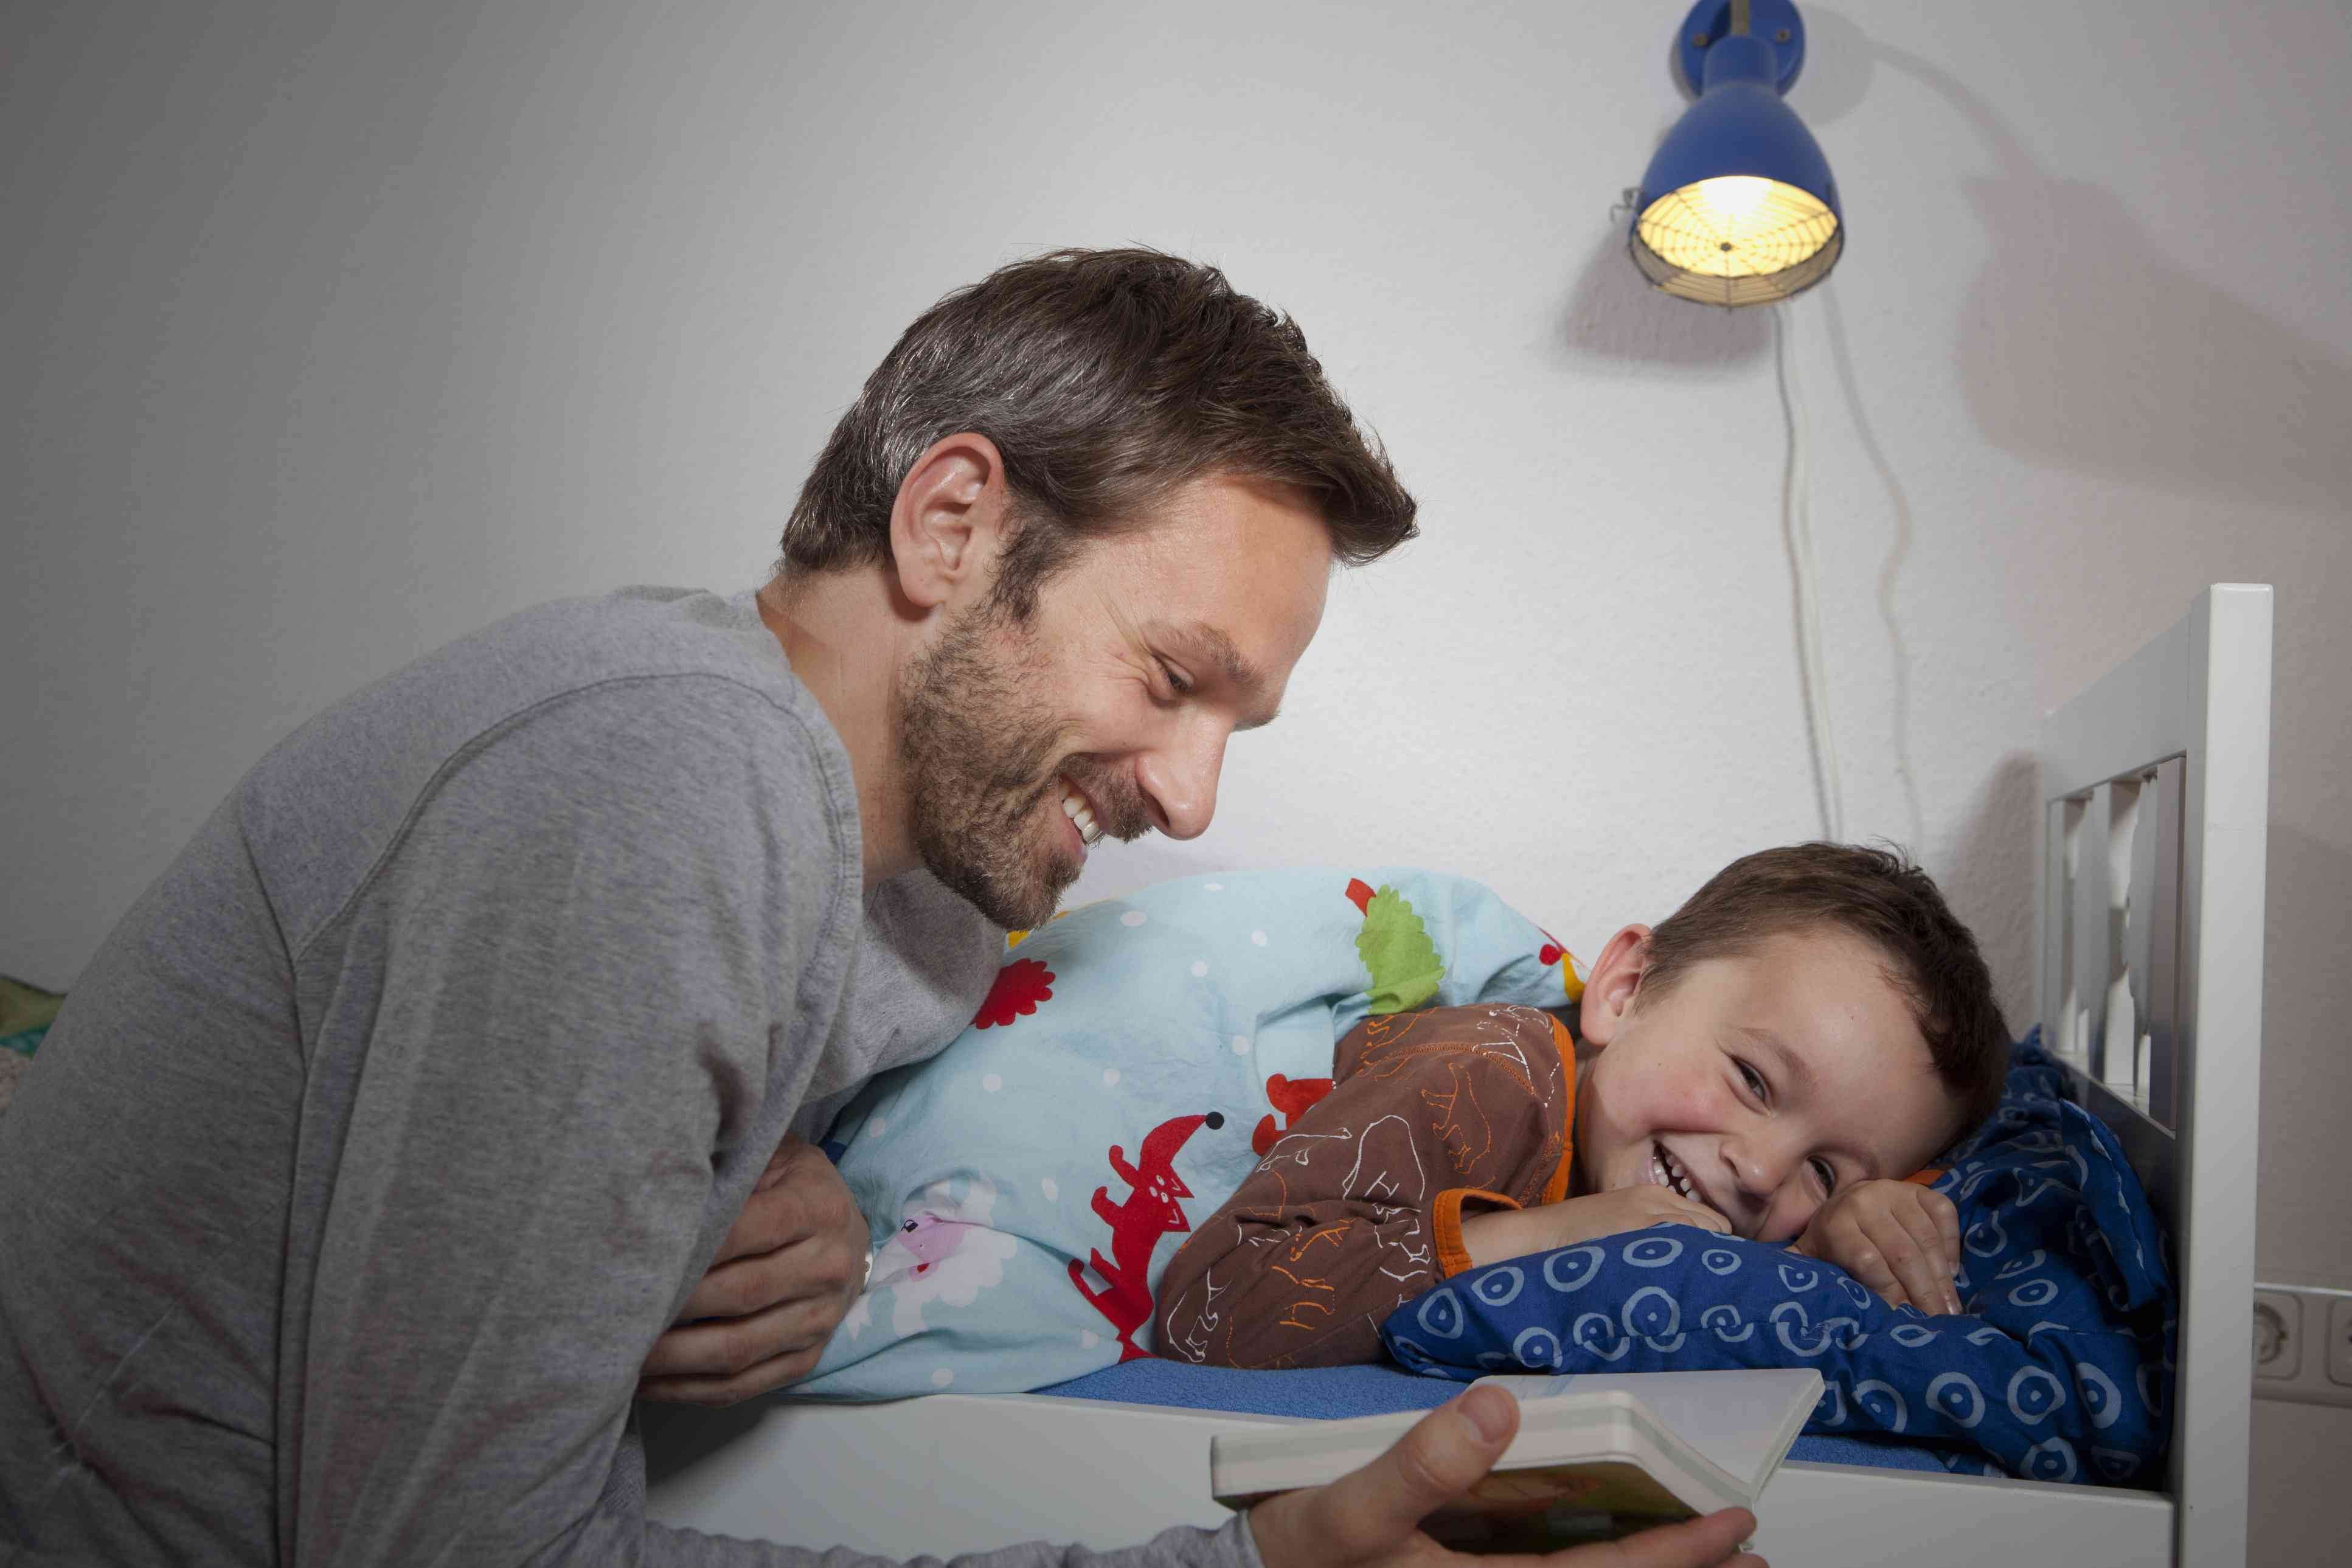 Father reading a story to son at bedtime.